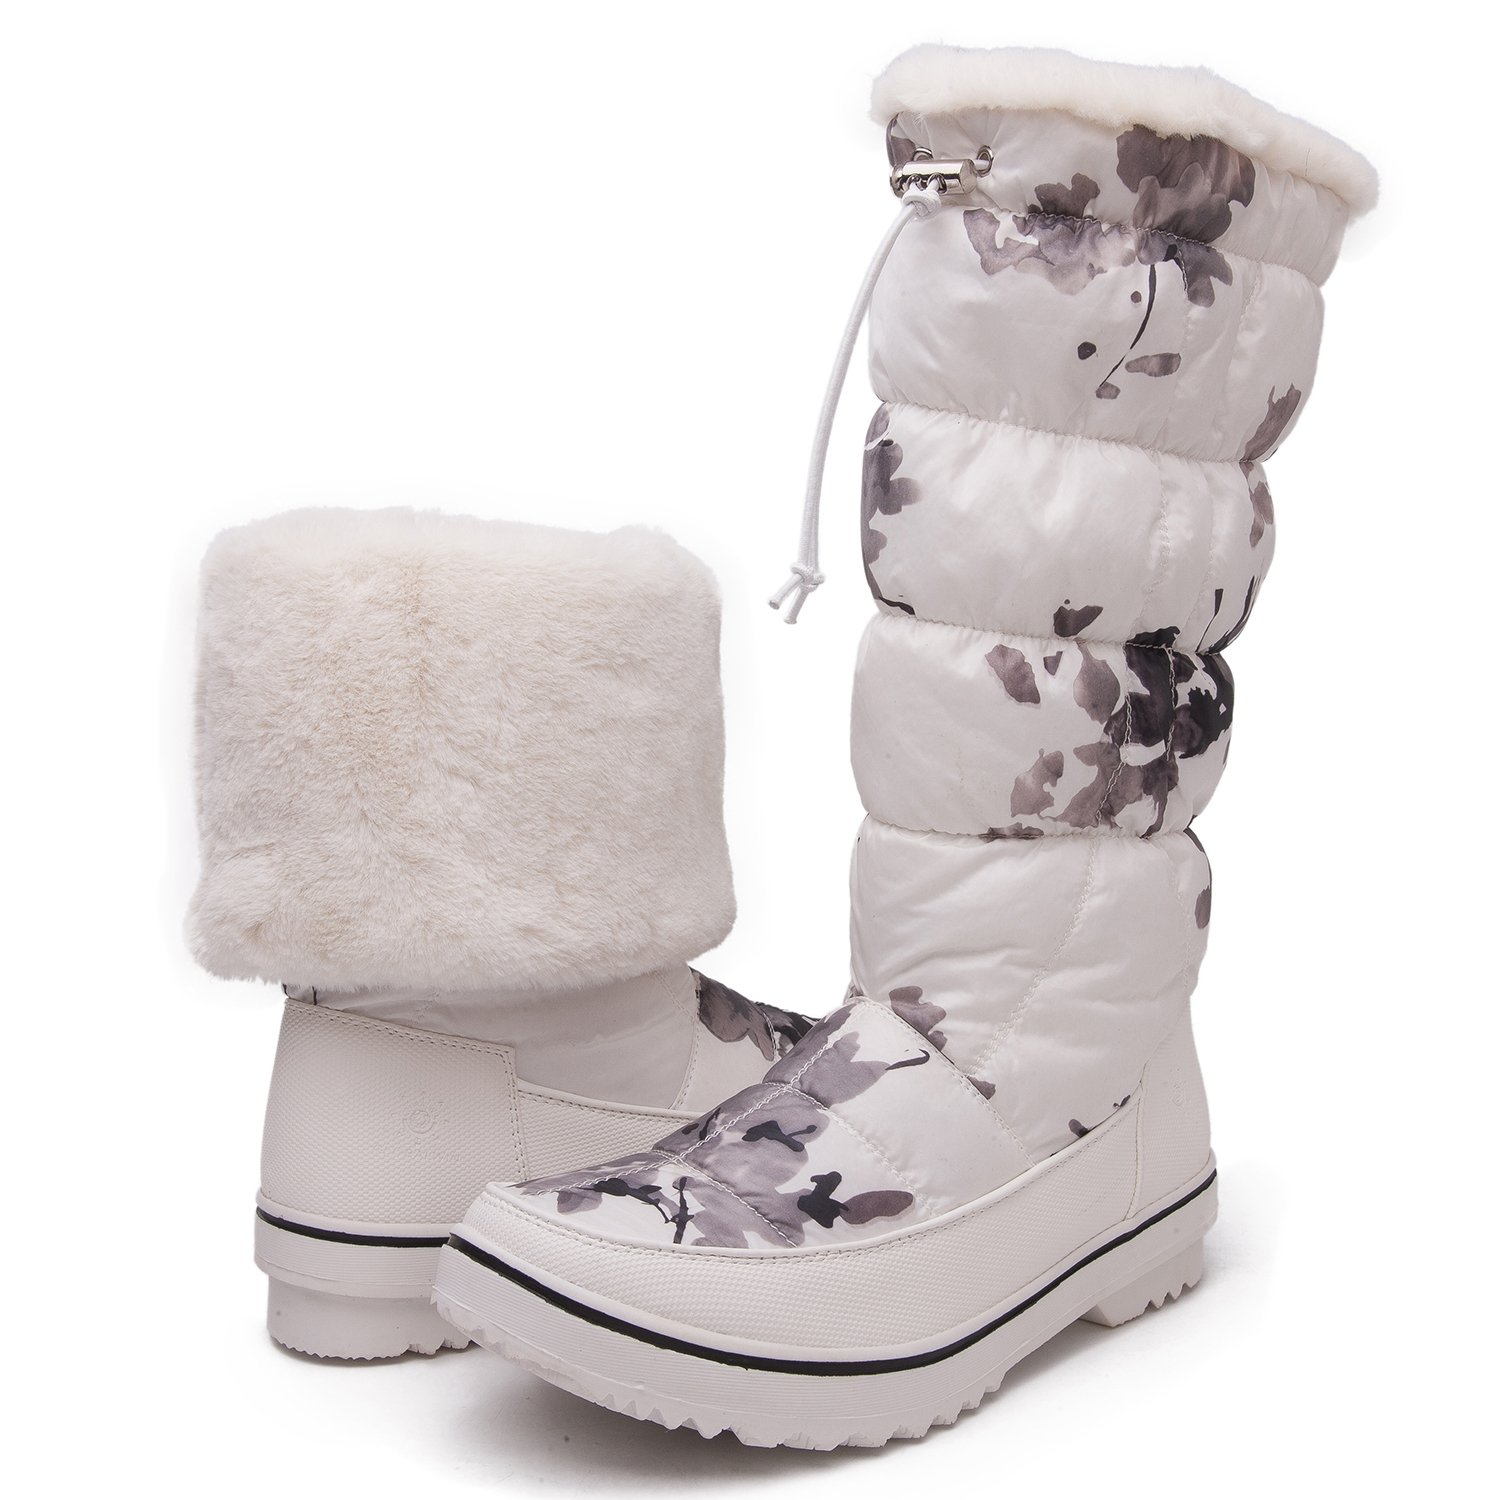 GW Women's 1713 White Camouflage Snow Boots 9 M US by Global Win (Image #1)